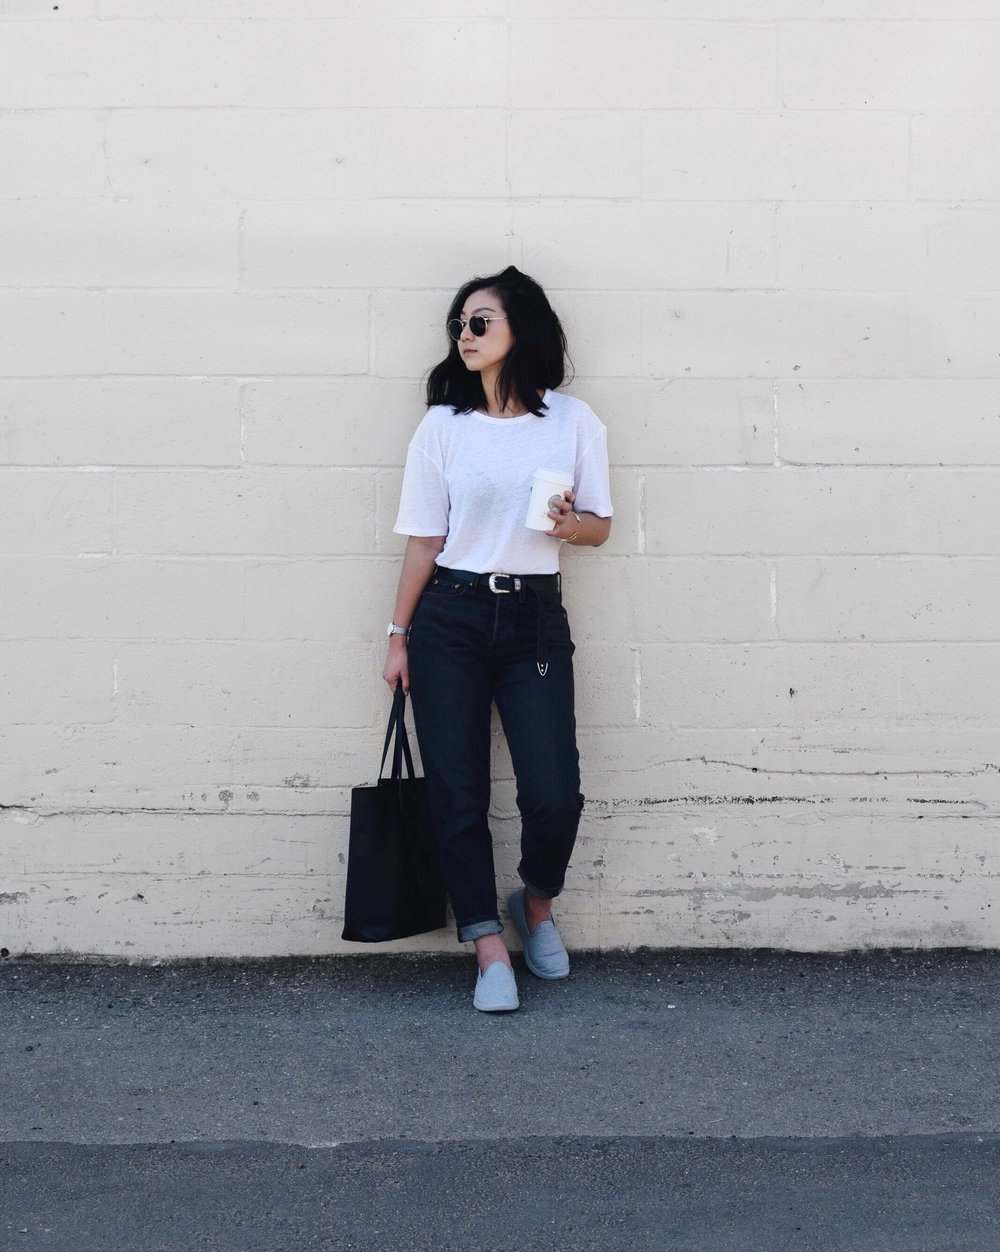 LEVI'S   jeans   / ARITZIA tee / YSL   tote   / DANIEL WELLINGTON   petite watch   / ALLBIRDS   wool loungers